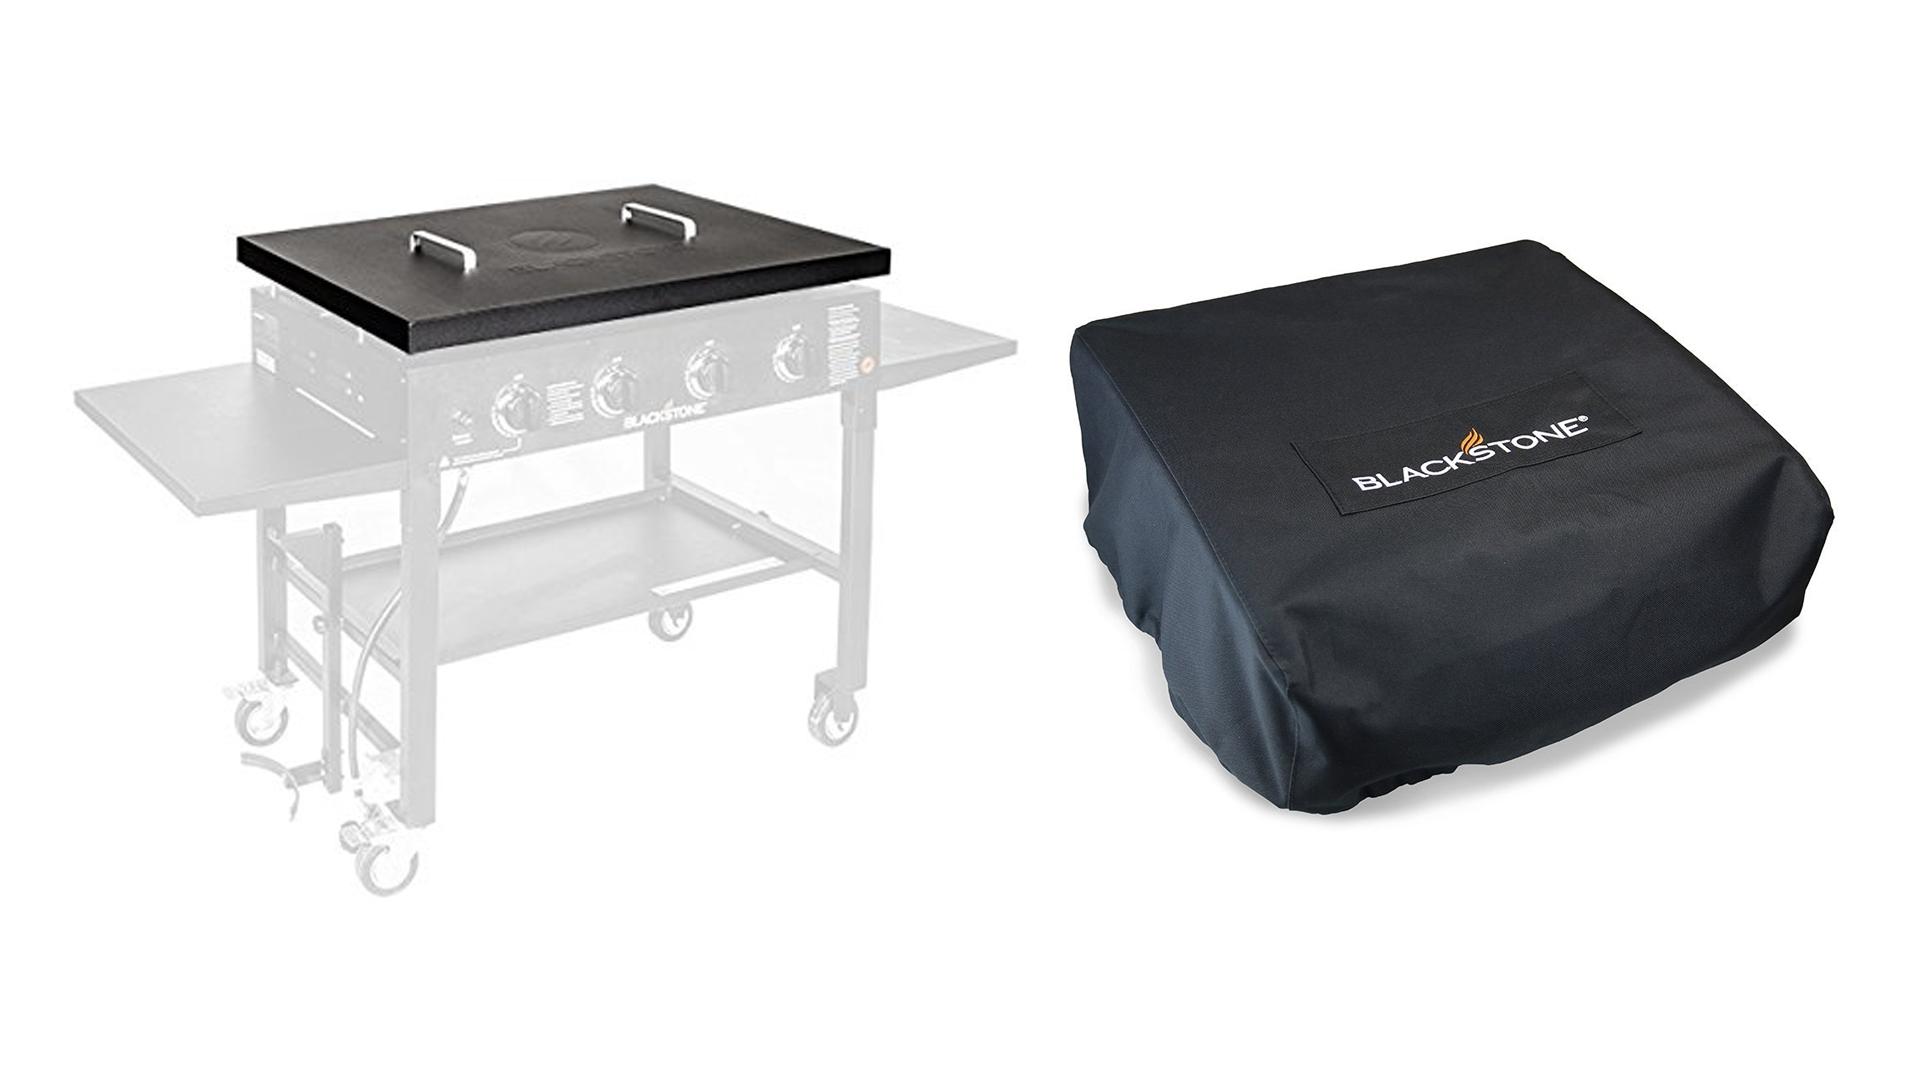 A hard griddle cover and a griddle bag